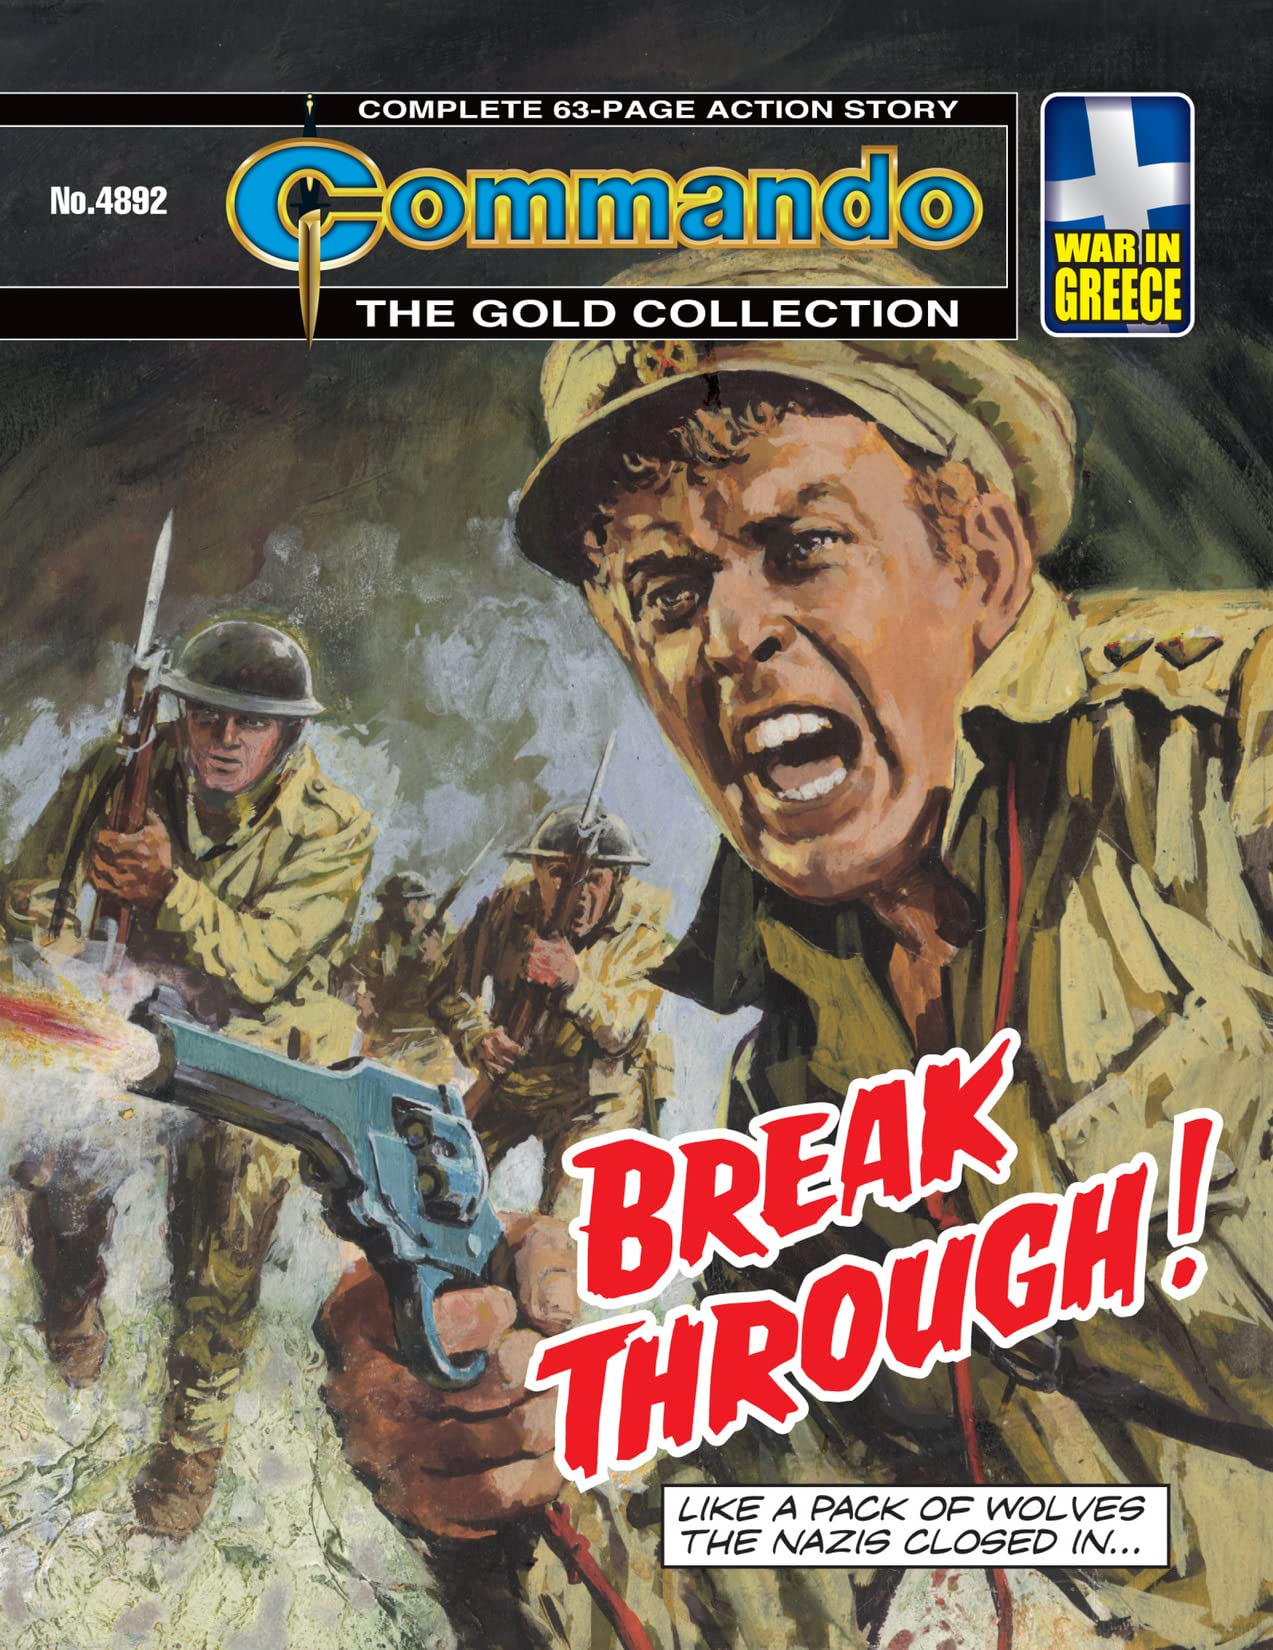 Commando #4892: Break Through!